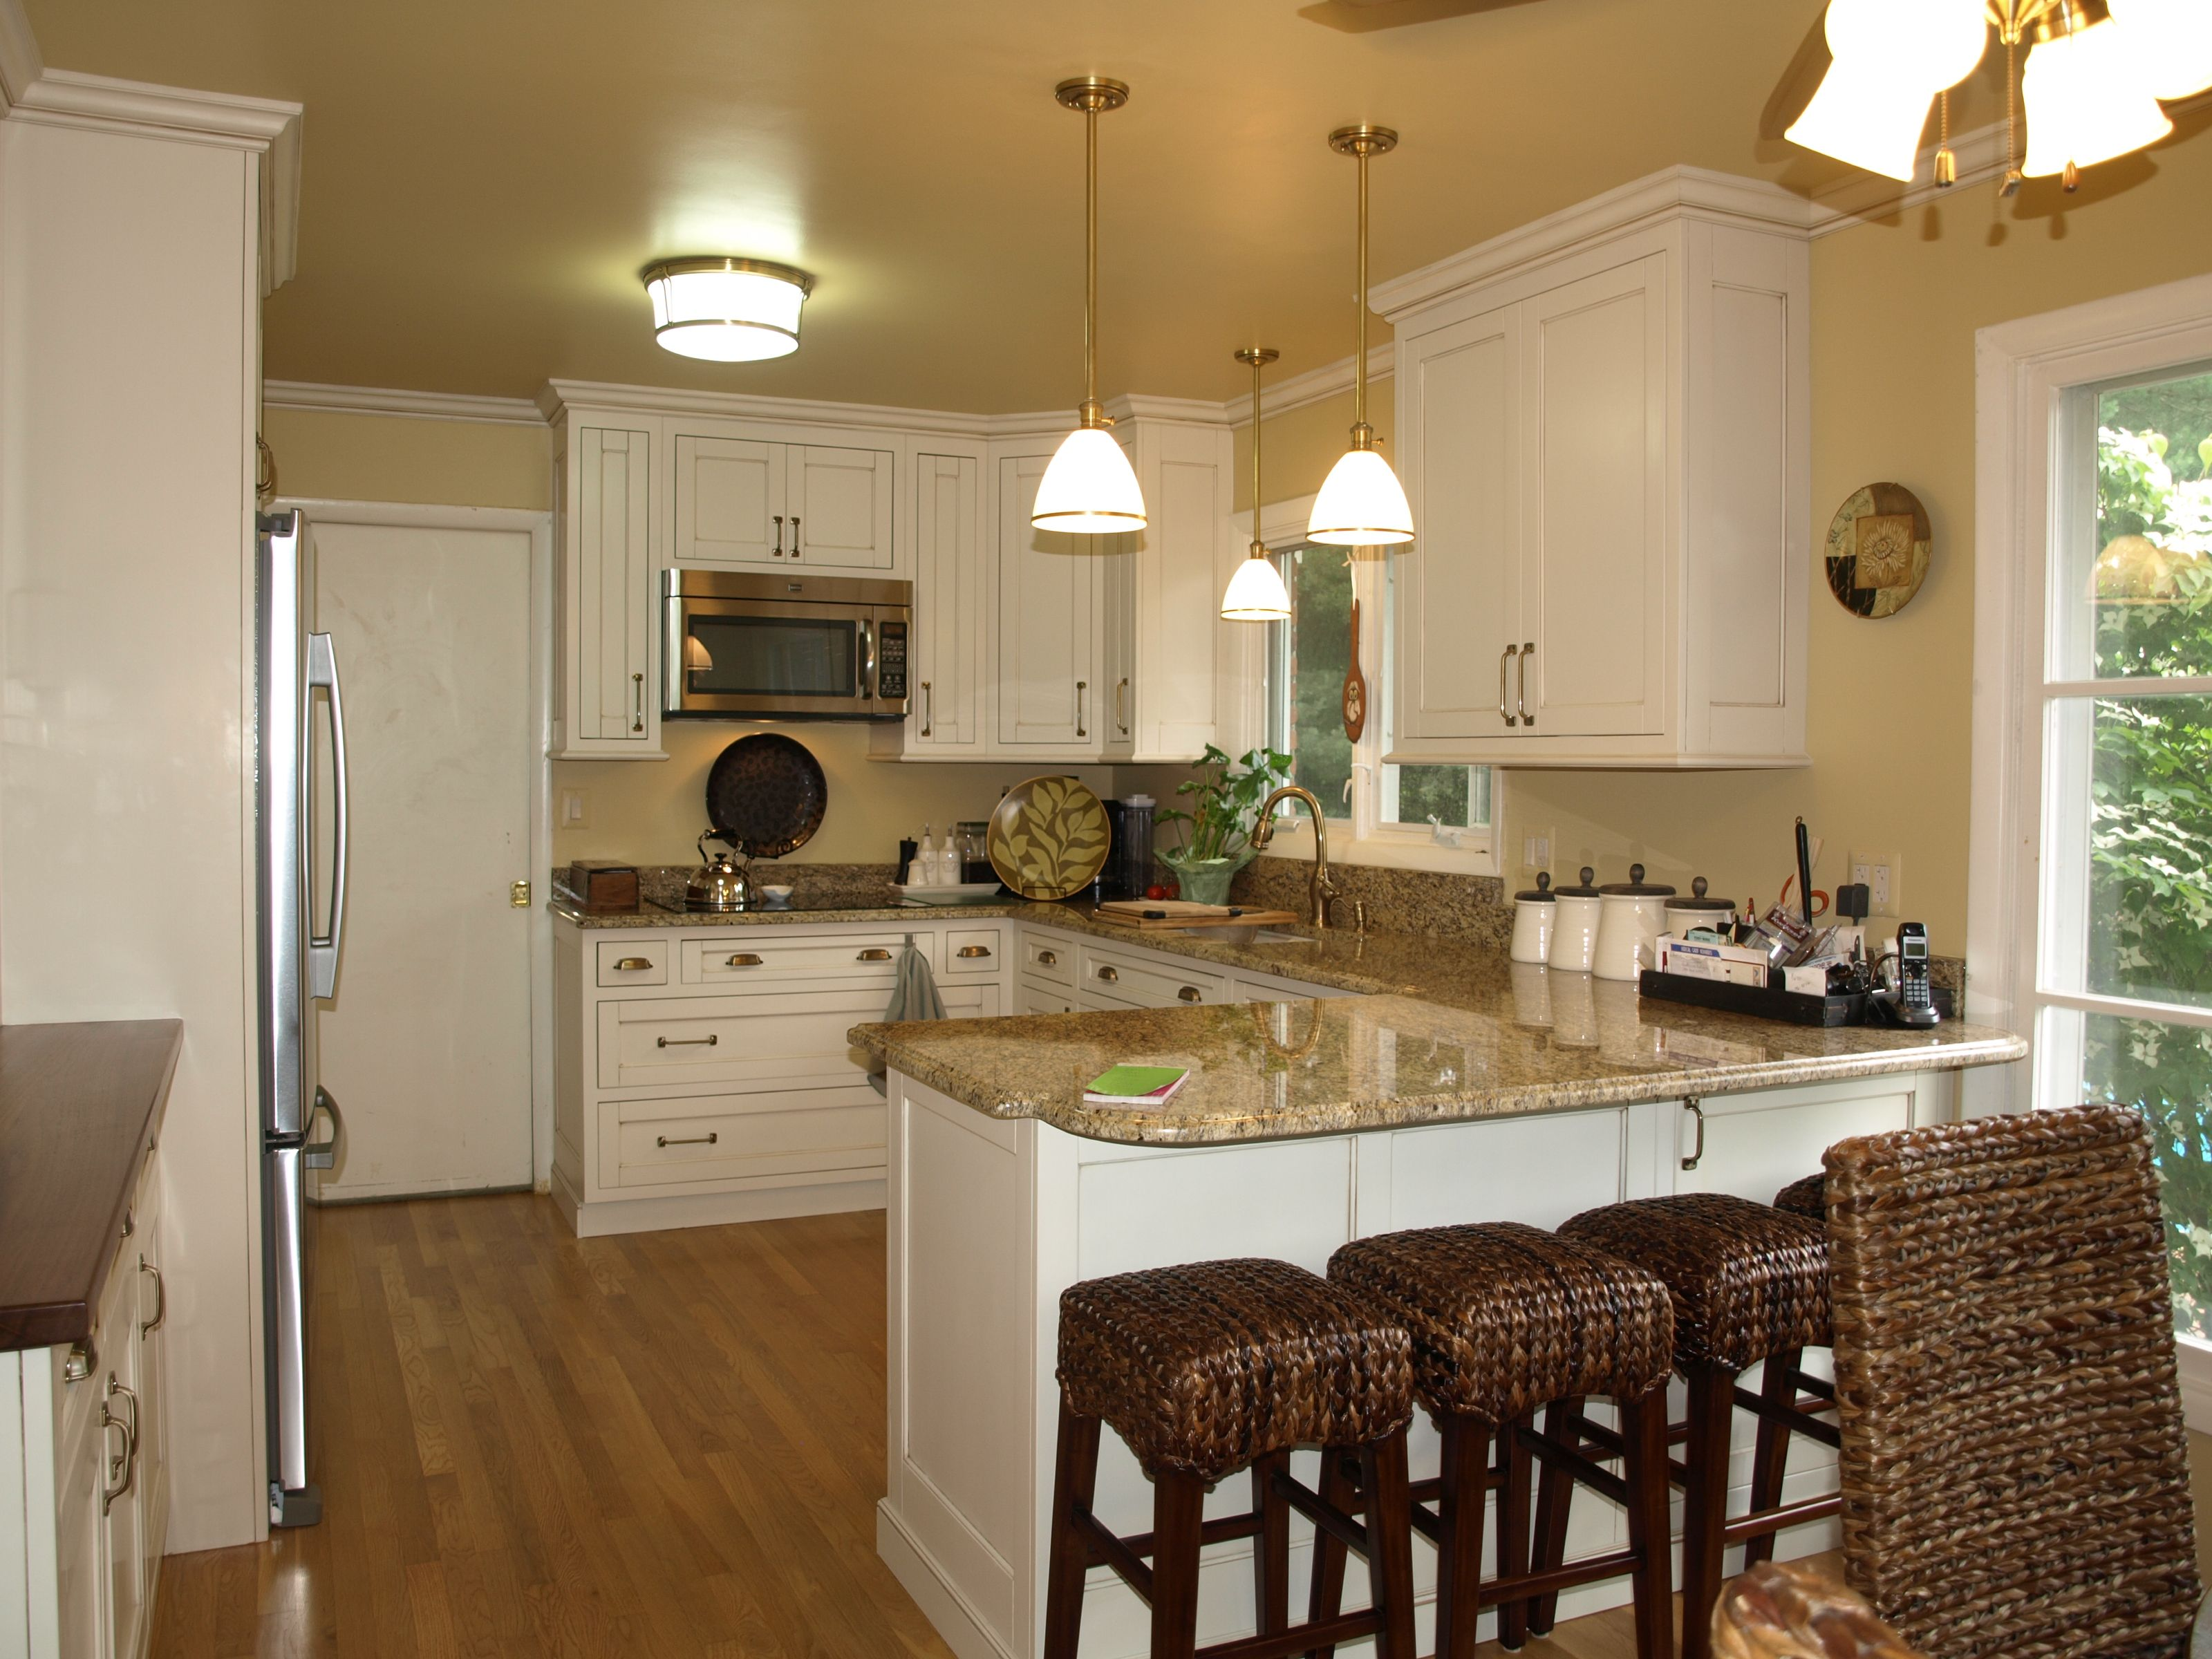 Lowes Show Kitchen Google Search Peninsula Kitchen Design